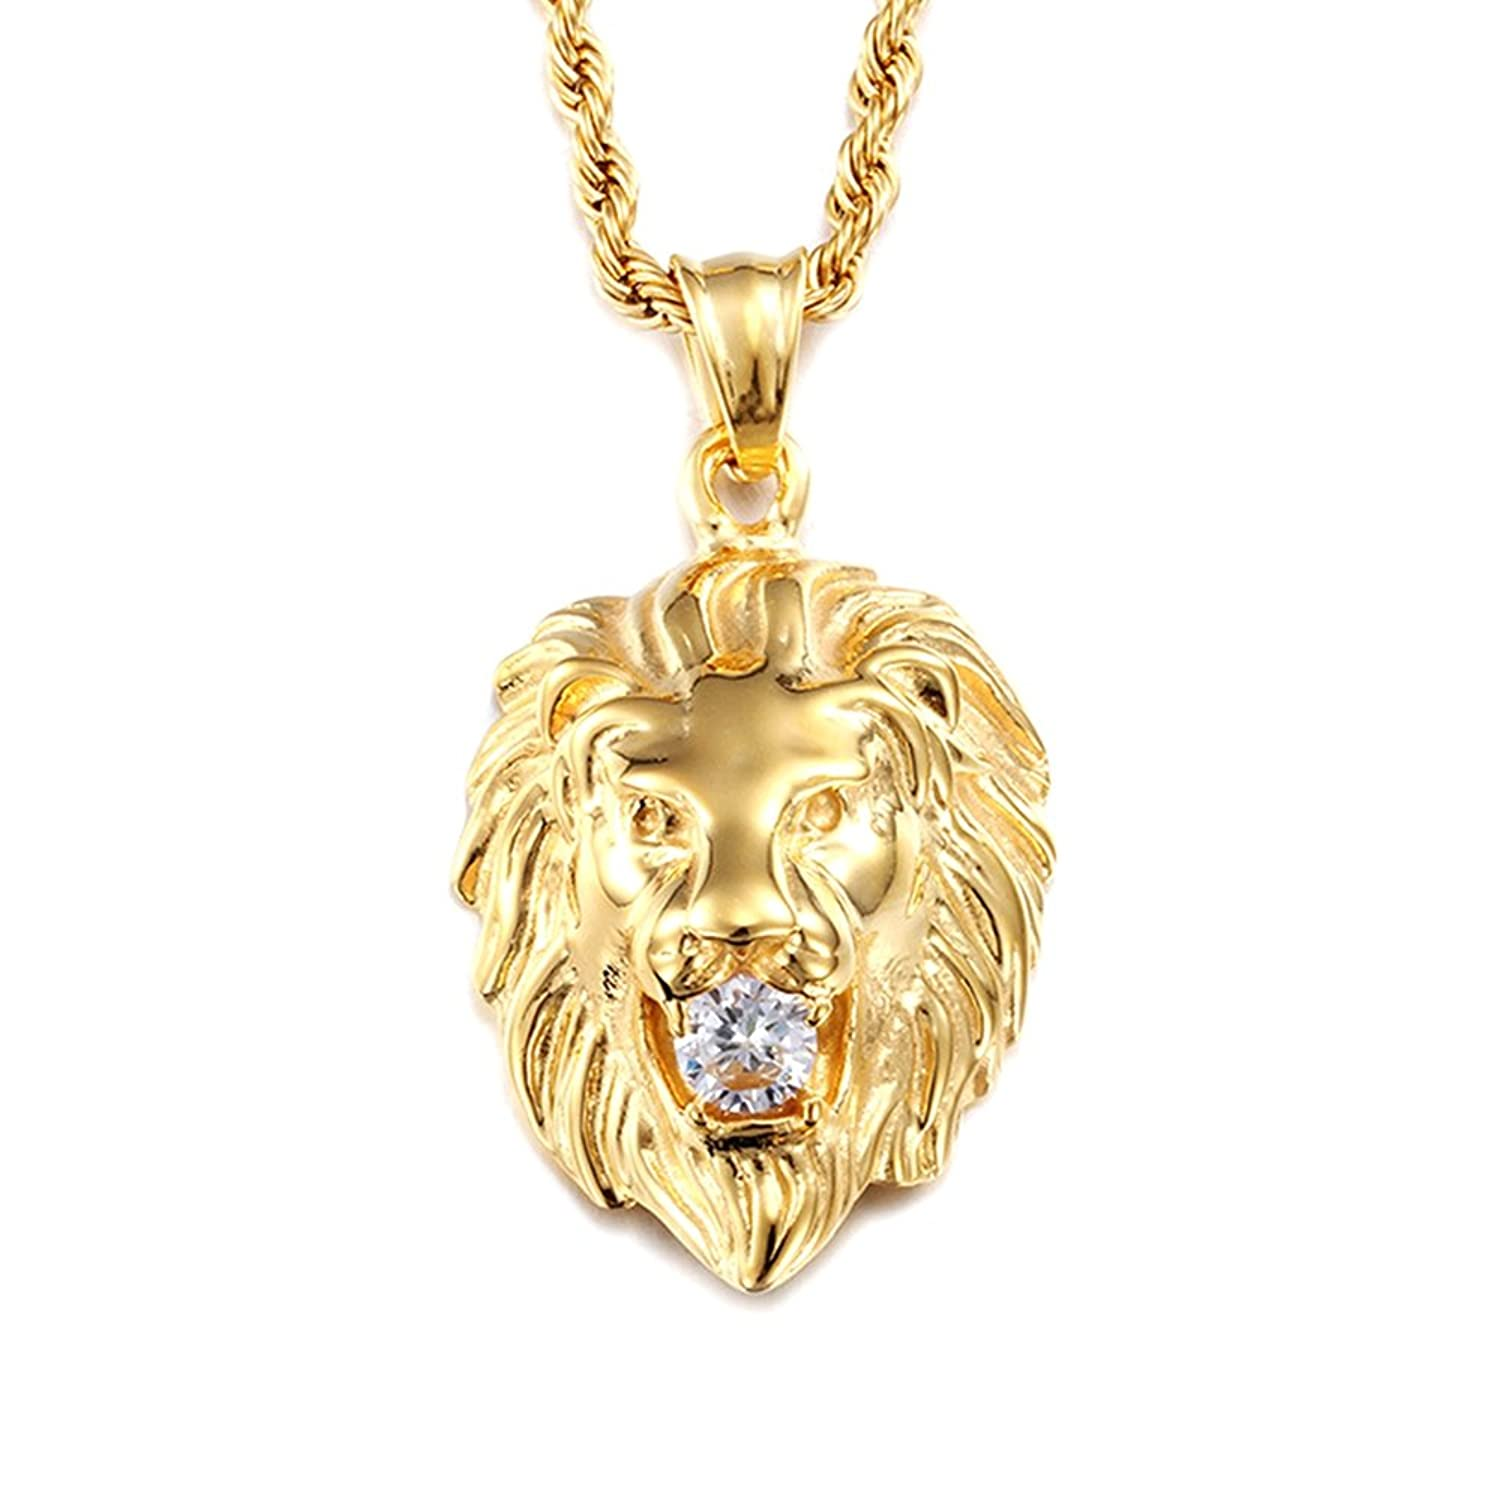 savage hell lion apparel product necklace to pendant straight